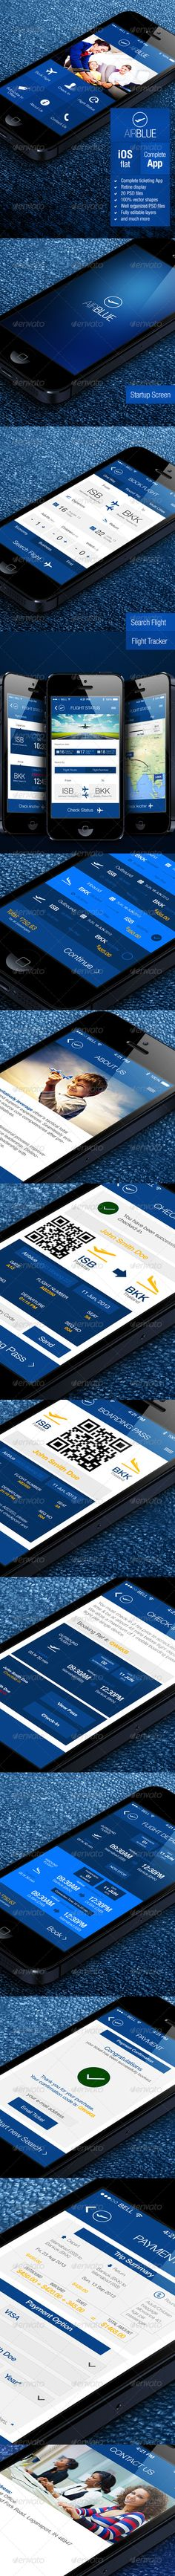 Buy AirBlue - Flight Ticket Booking App by fidaktk on GraphicRiver. AirBlue – flight ticket booking app AirBlue – flight ticket booking is a hight quality complete app with lot of eleme. Web Design, Ios App Design, Mobile Ui Design, User Interface Design, Graphic Design, Apps, 404 Pages, Mobile App Ui, Mobile Responsive